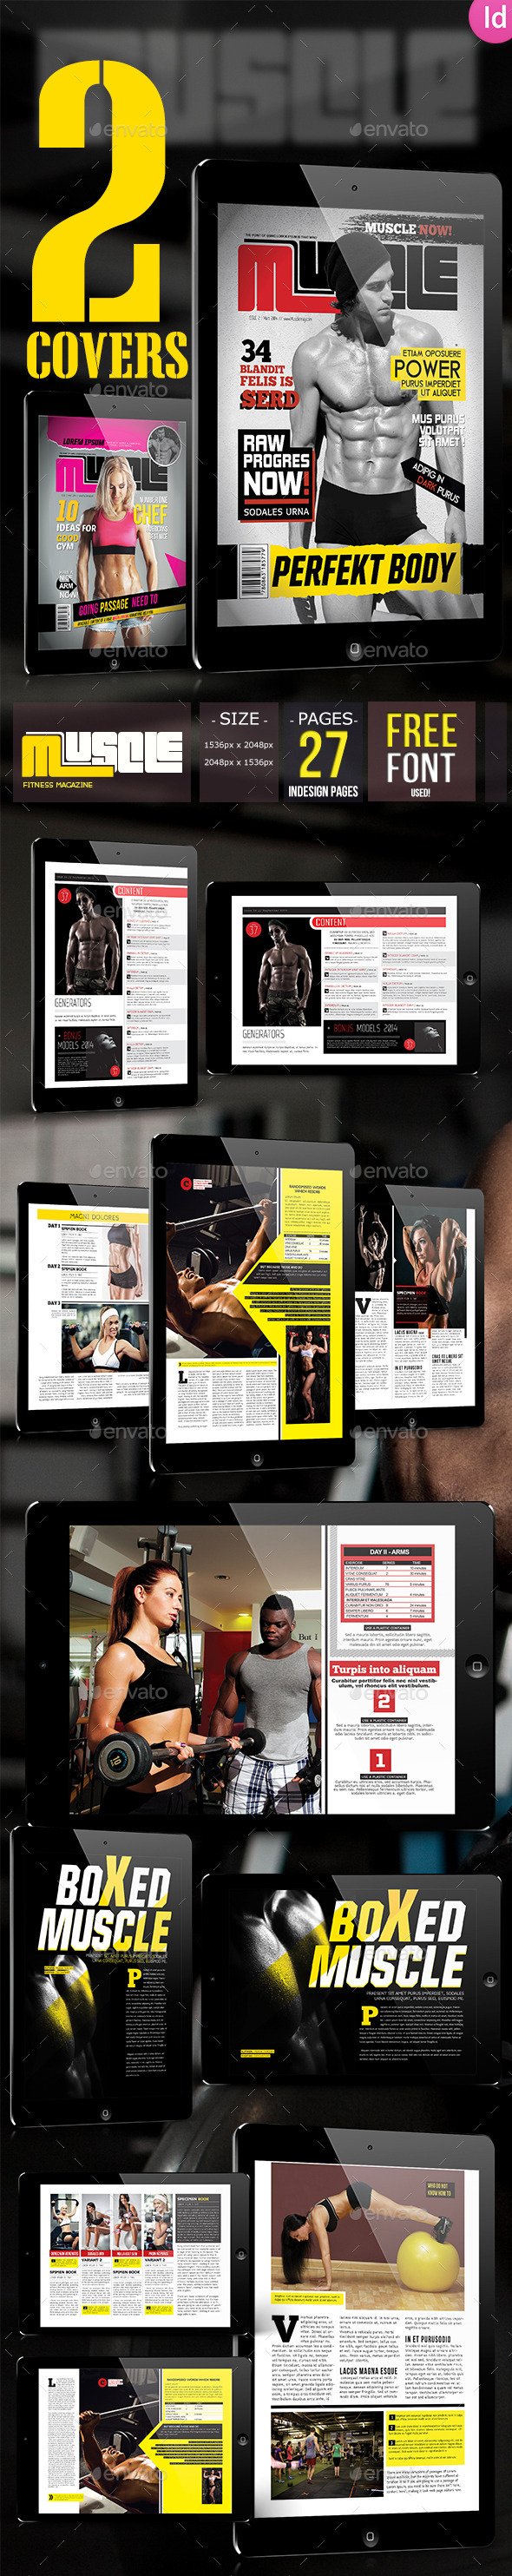 Sport & Fitness Magazine + 2 Covers For Tablet - Digital Magazines ePublishing